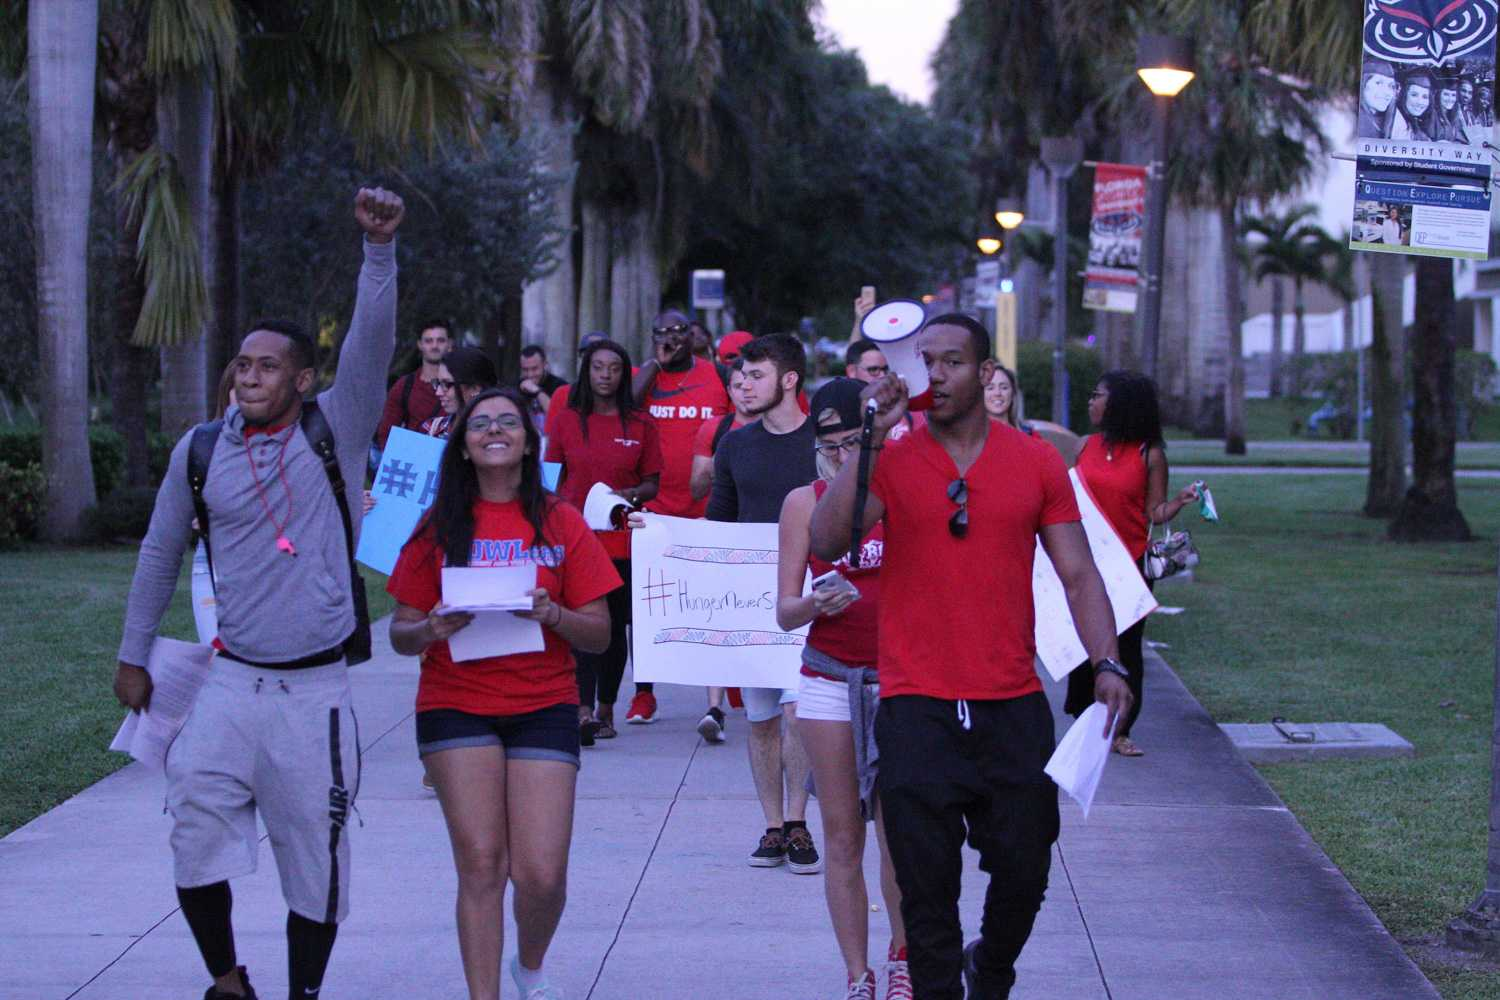 Rich Haughton (right) leads the protest toward the Atlantic Dining Hall. Brendan Feeney | Sports Editor